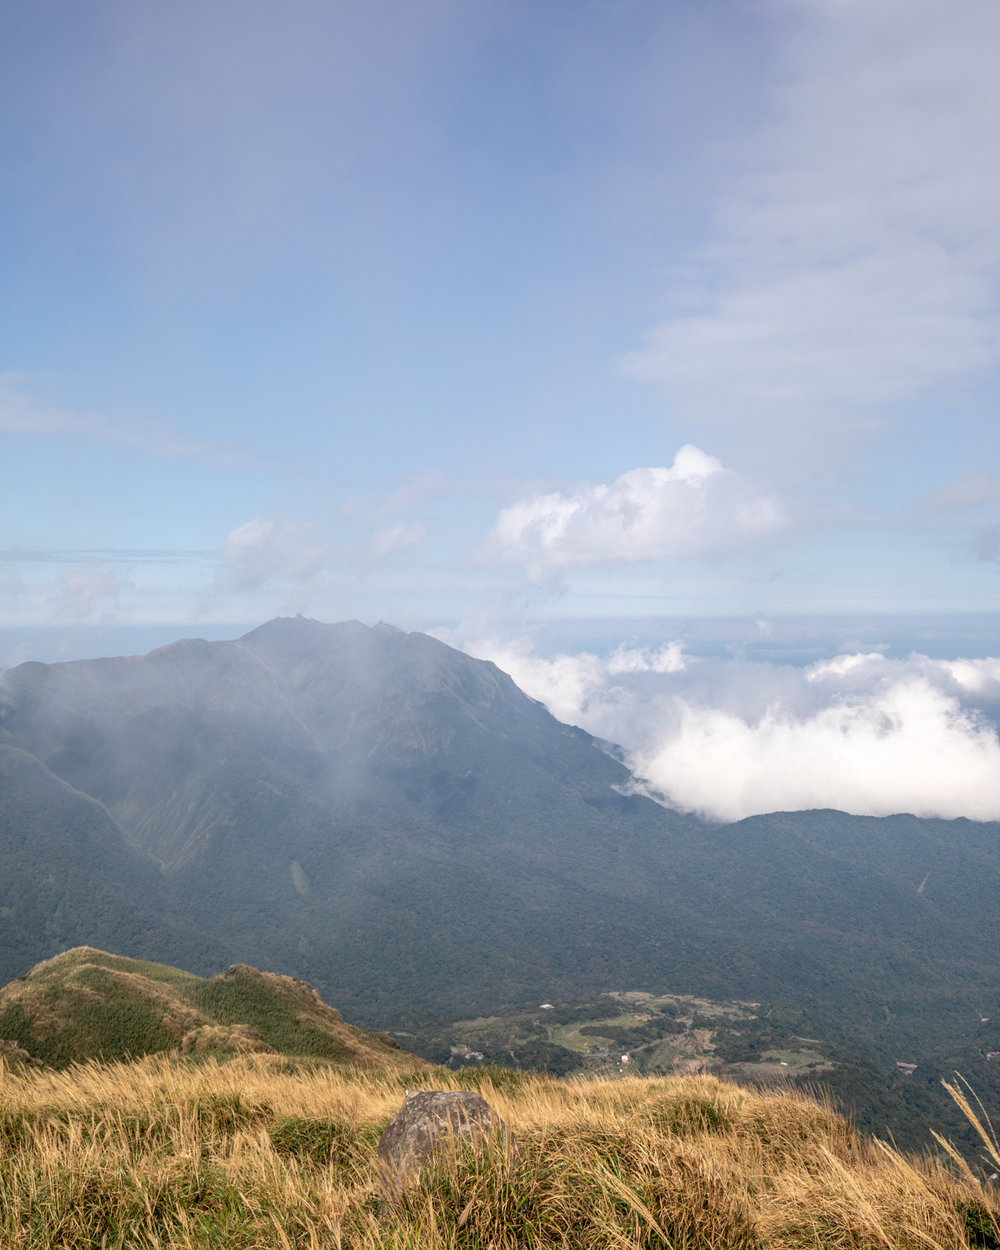 The views from Yangmingshan